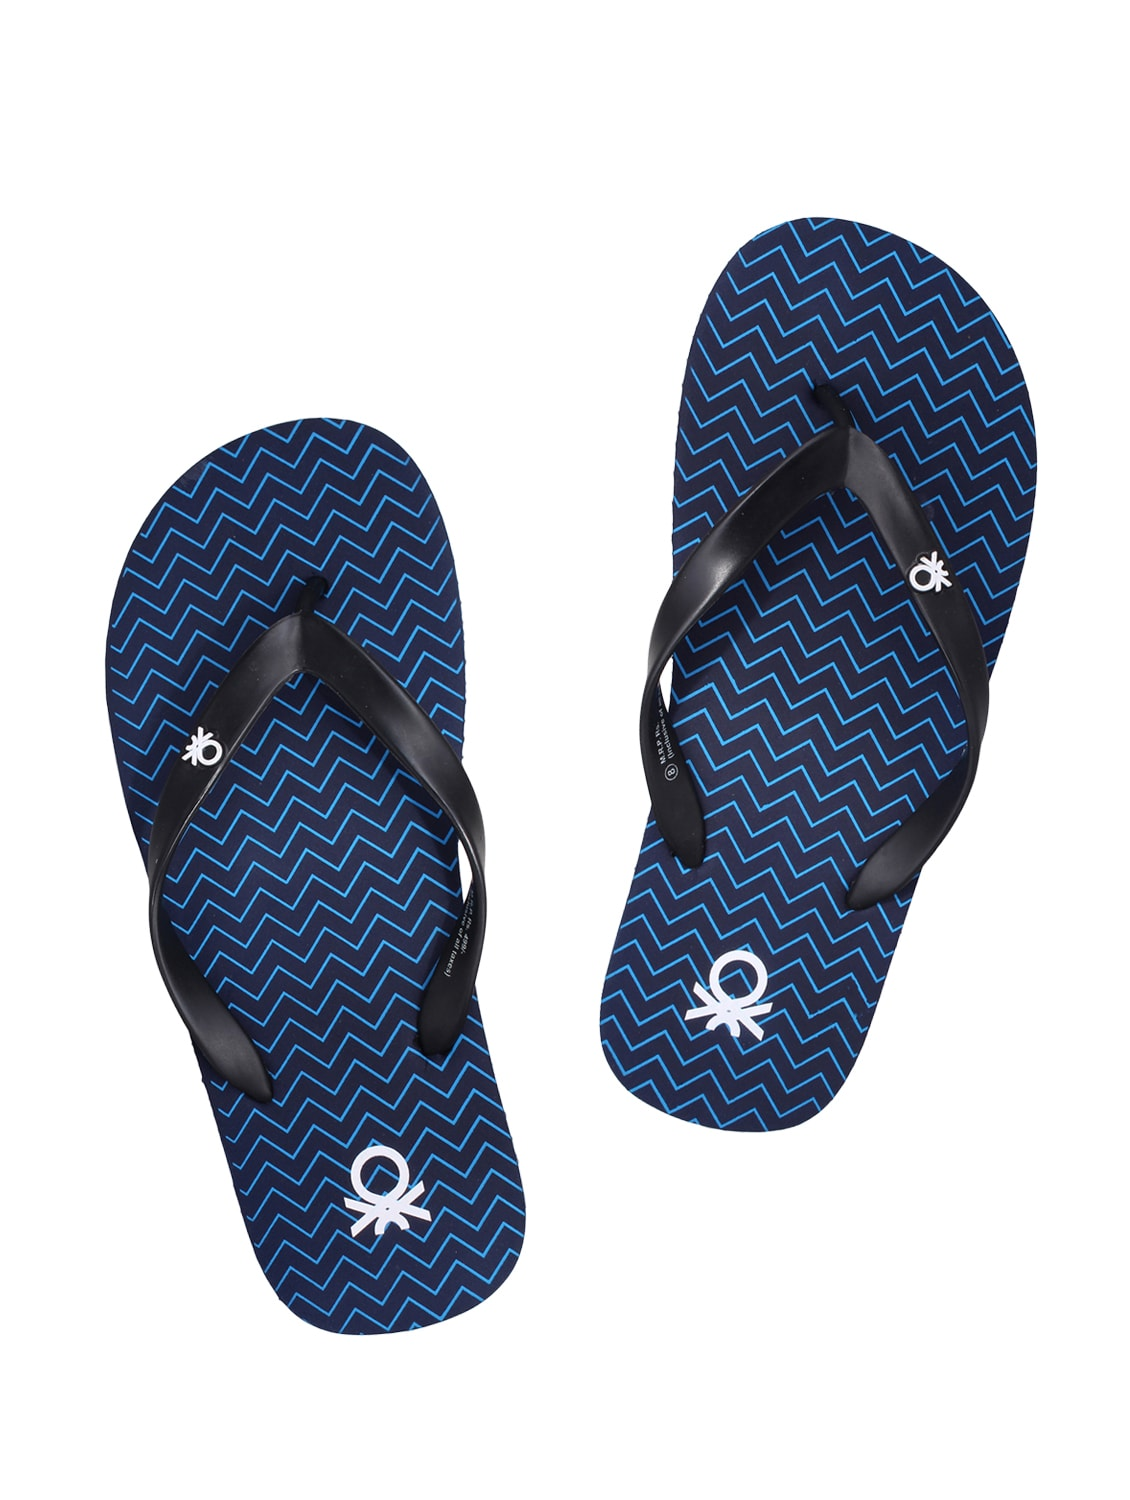 17d8e6ca6 Buy Navy Rubber Toe Separator Slippers for Men from Ucb for ₹499 at 0% off